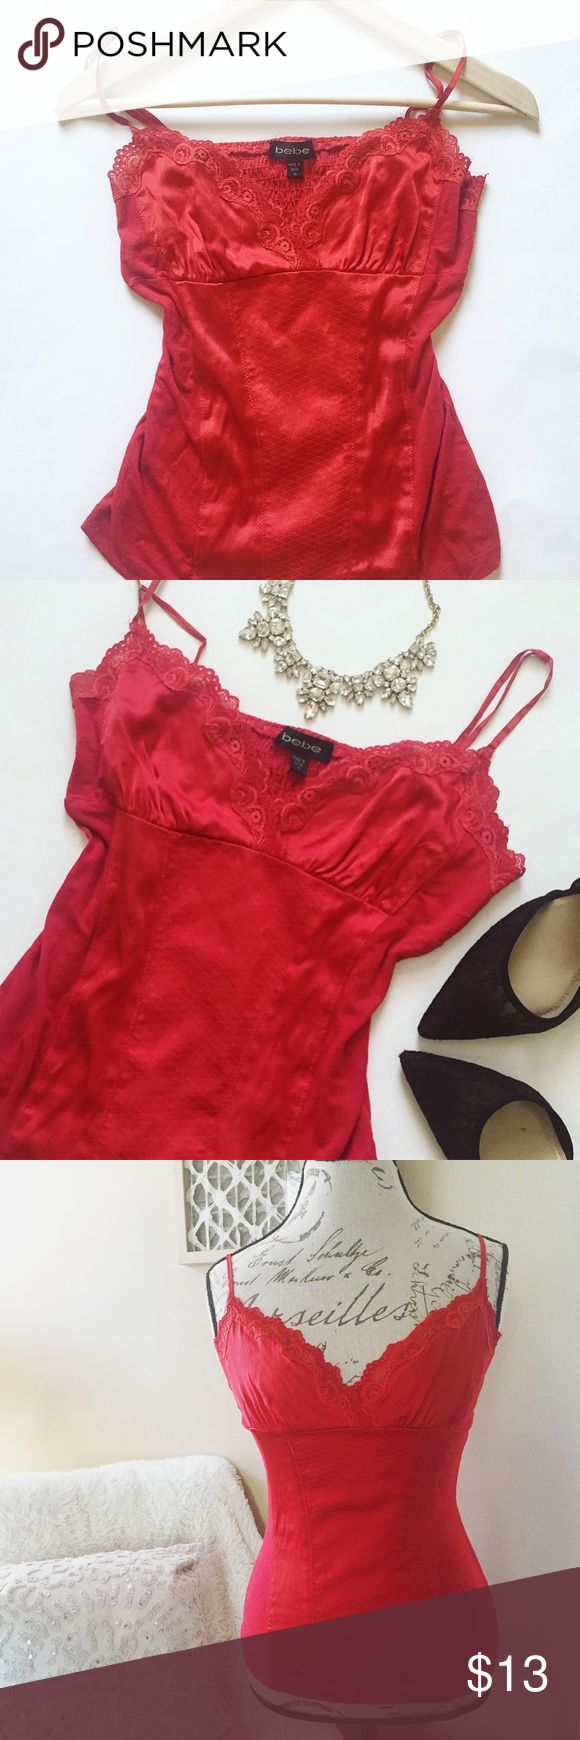 "Bebe Silk Camisole Bebe lace and silk camisole in Rio Red! Looks gorgeous on its own,or with a white or black blazer! Size M,chest measures approx 13"",with approx 18"" length. Made of 95% silk/5% spandex,and the contrast is 95% rayon/5% spandex,so there is some stretch to it! I would say this is in good condition,no major flaws,just a couple small white spots(see last pic) that are barely noticeable,light pilling on contrast,and right strap has part of adjuster missing,so it is a little…"